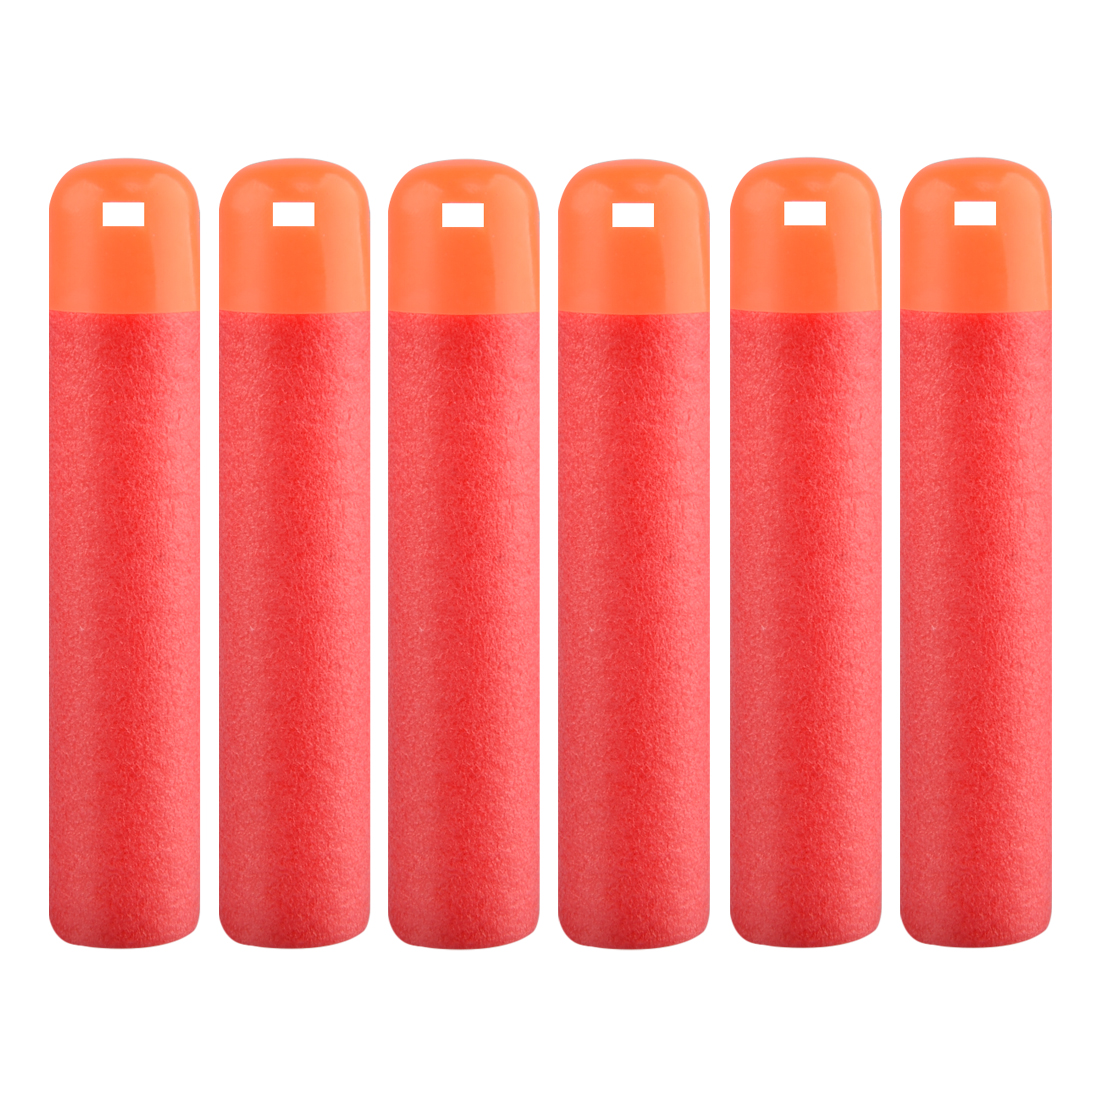 30Pcs/Lot 9.5cm Red Sniper Rifle Darts Bullets For Nerf Mega Kids Toy Foam Refill Darts Big Hole Head Bullets Christmas Gift(China)